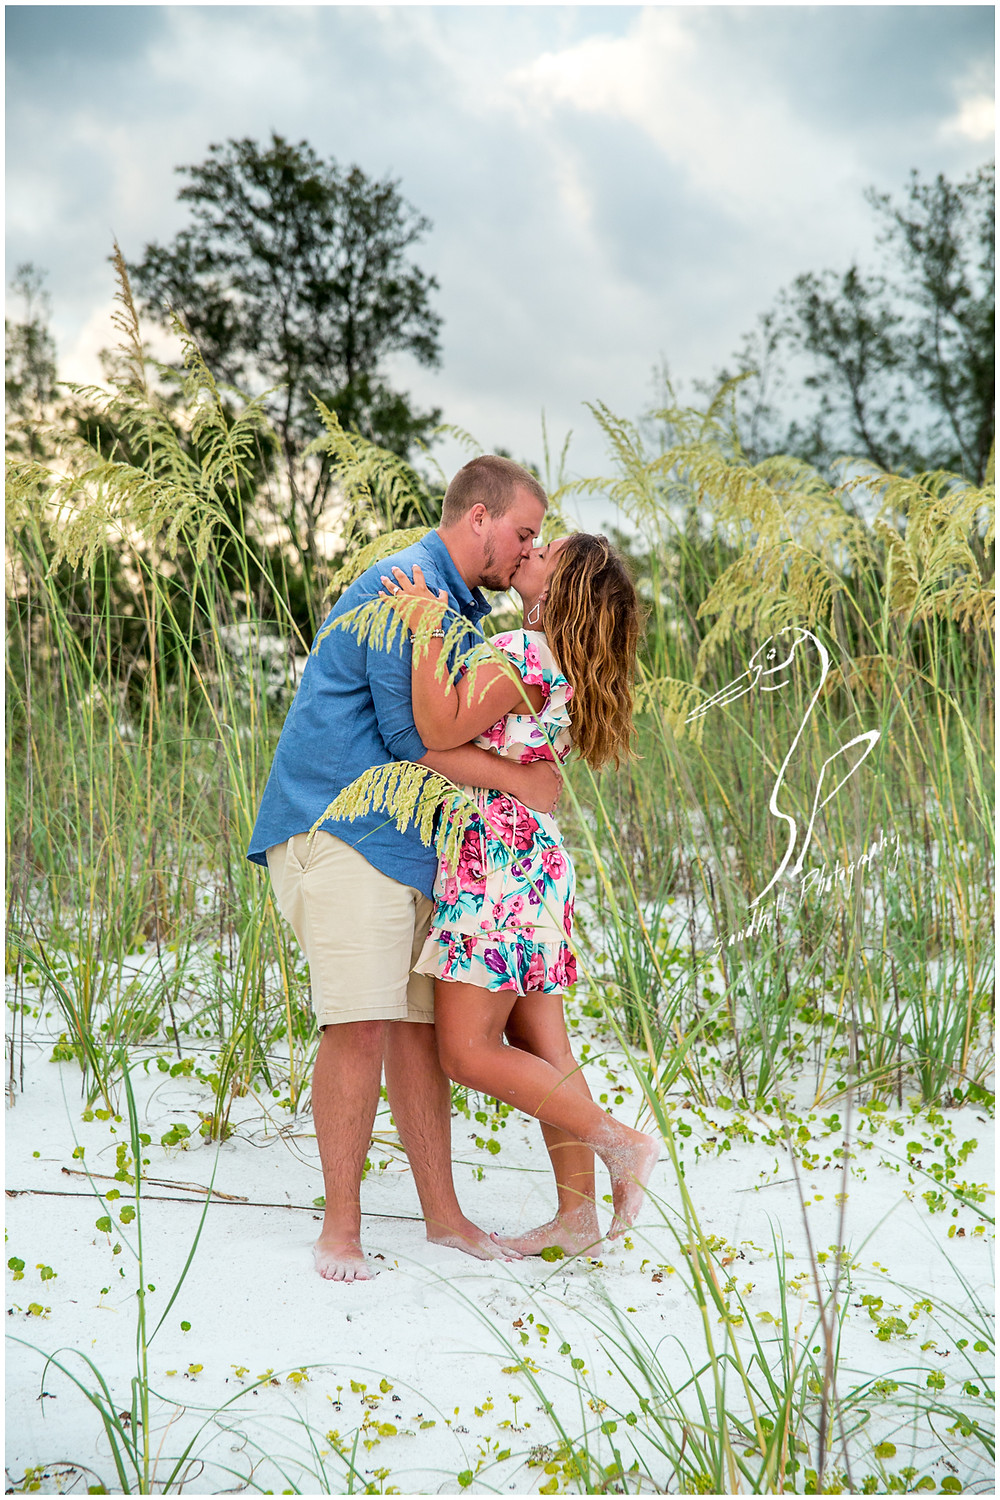 Bradenton Beach Engagement Photography, an engaged couple embrace and share a private kiss in the sand dunes, by Sandhill Photography